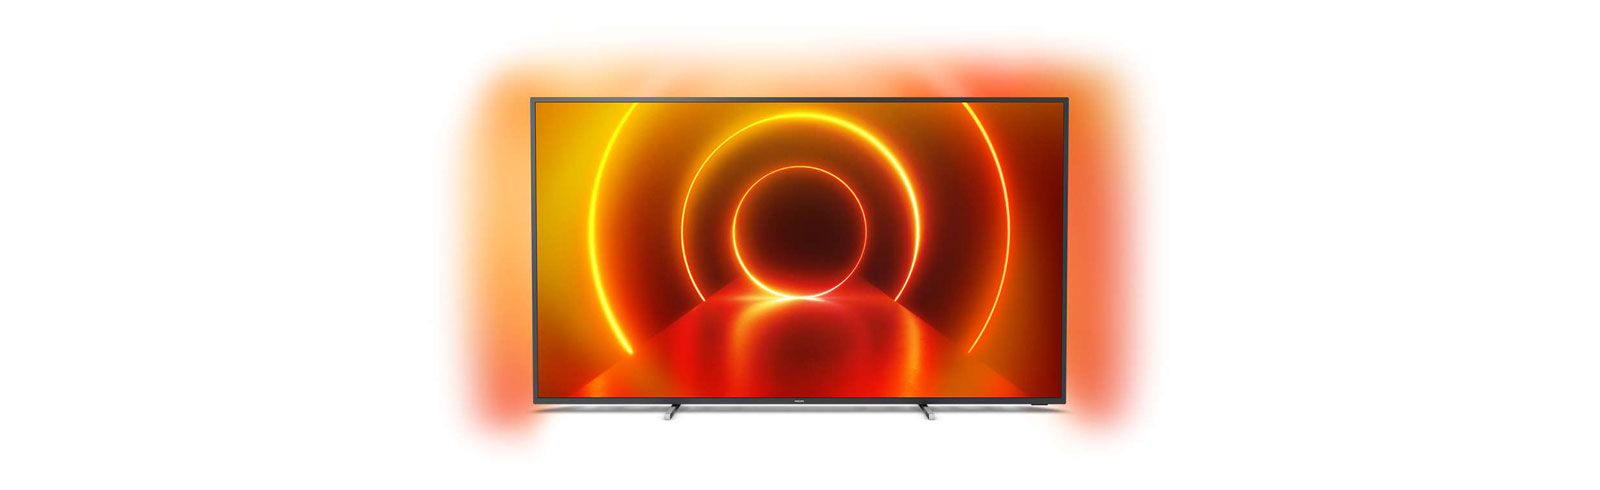 Philips 7805, 7835, 7855 4K TV series - specifications and features